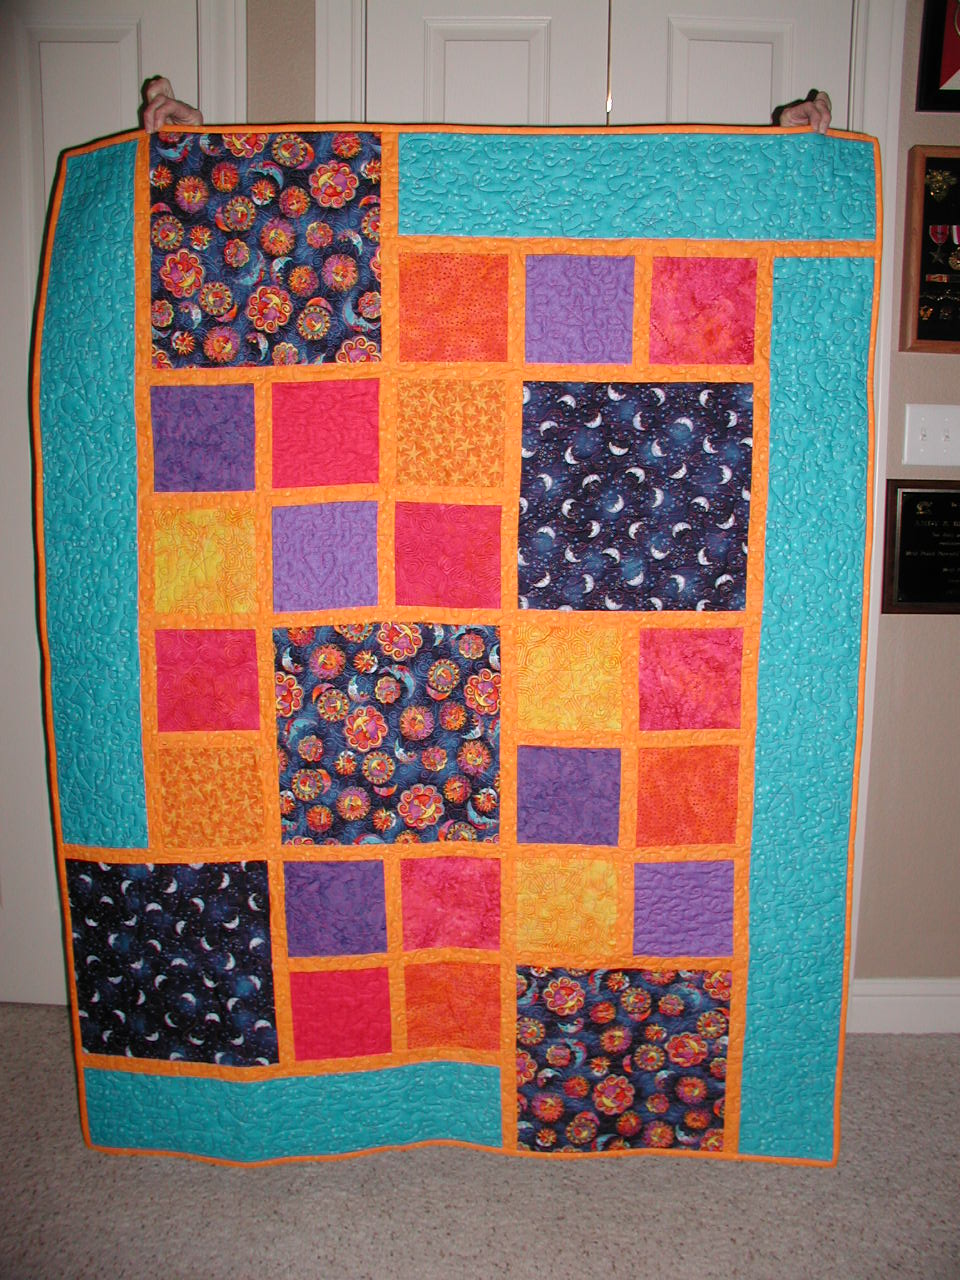 Betty's quilts and more!